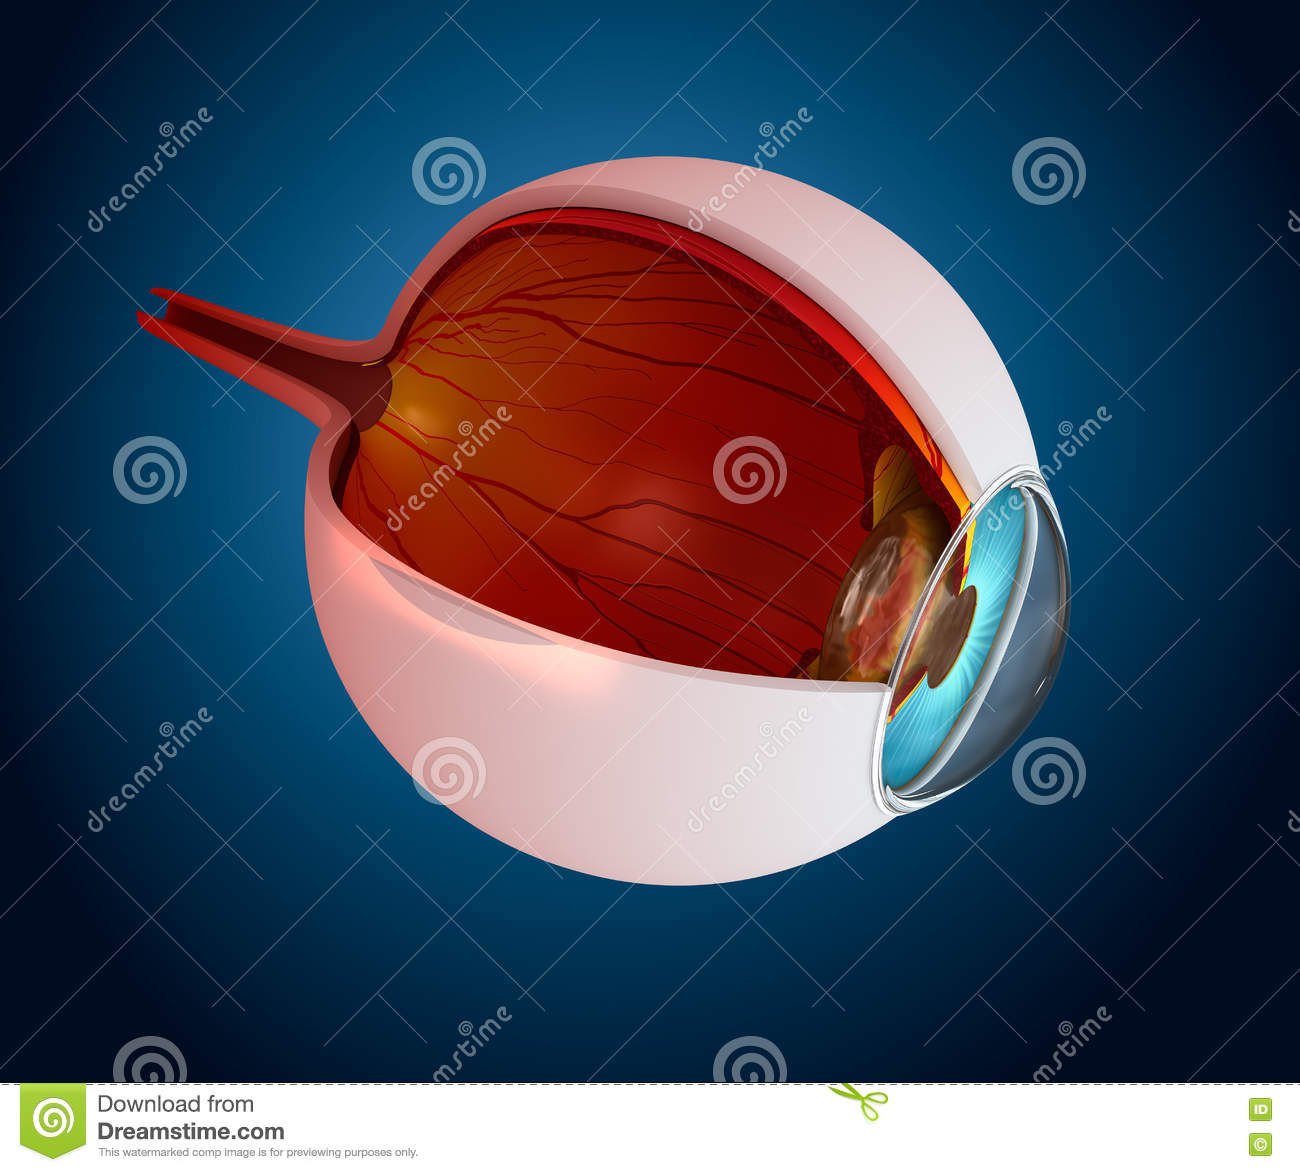 Eye anatomy - inner structure